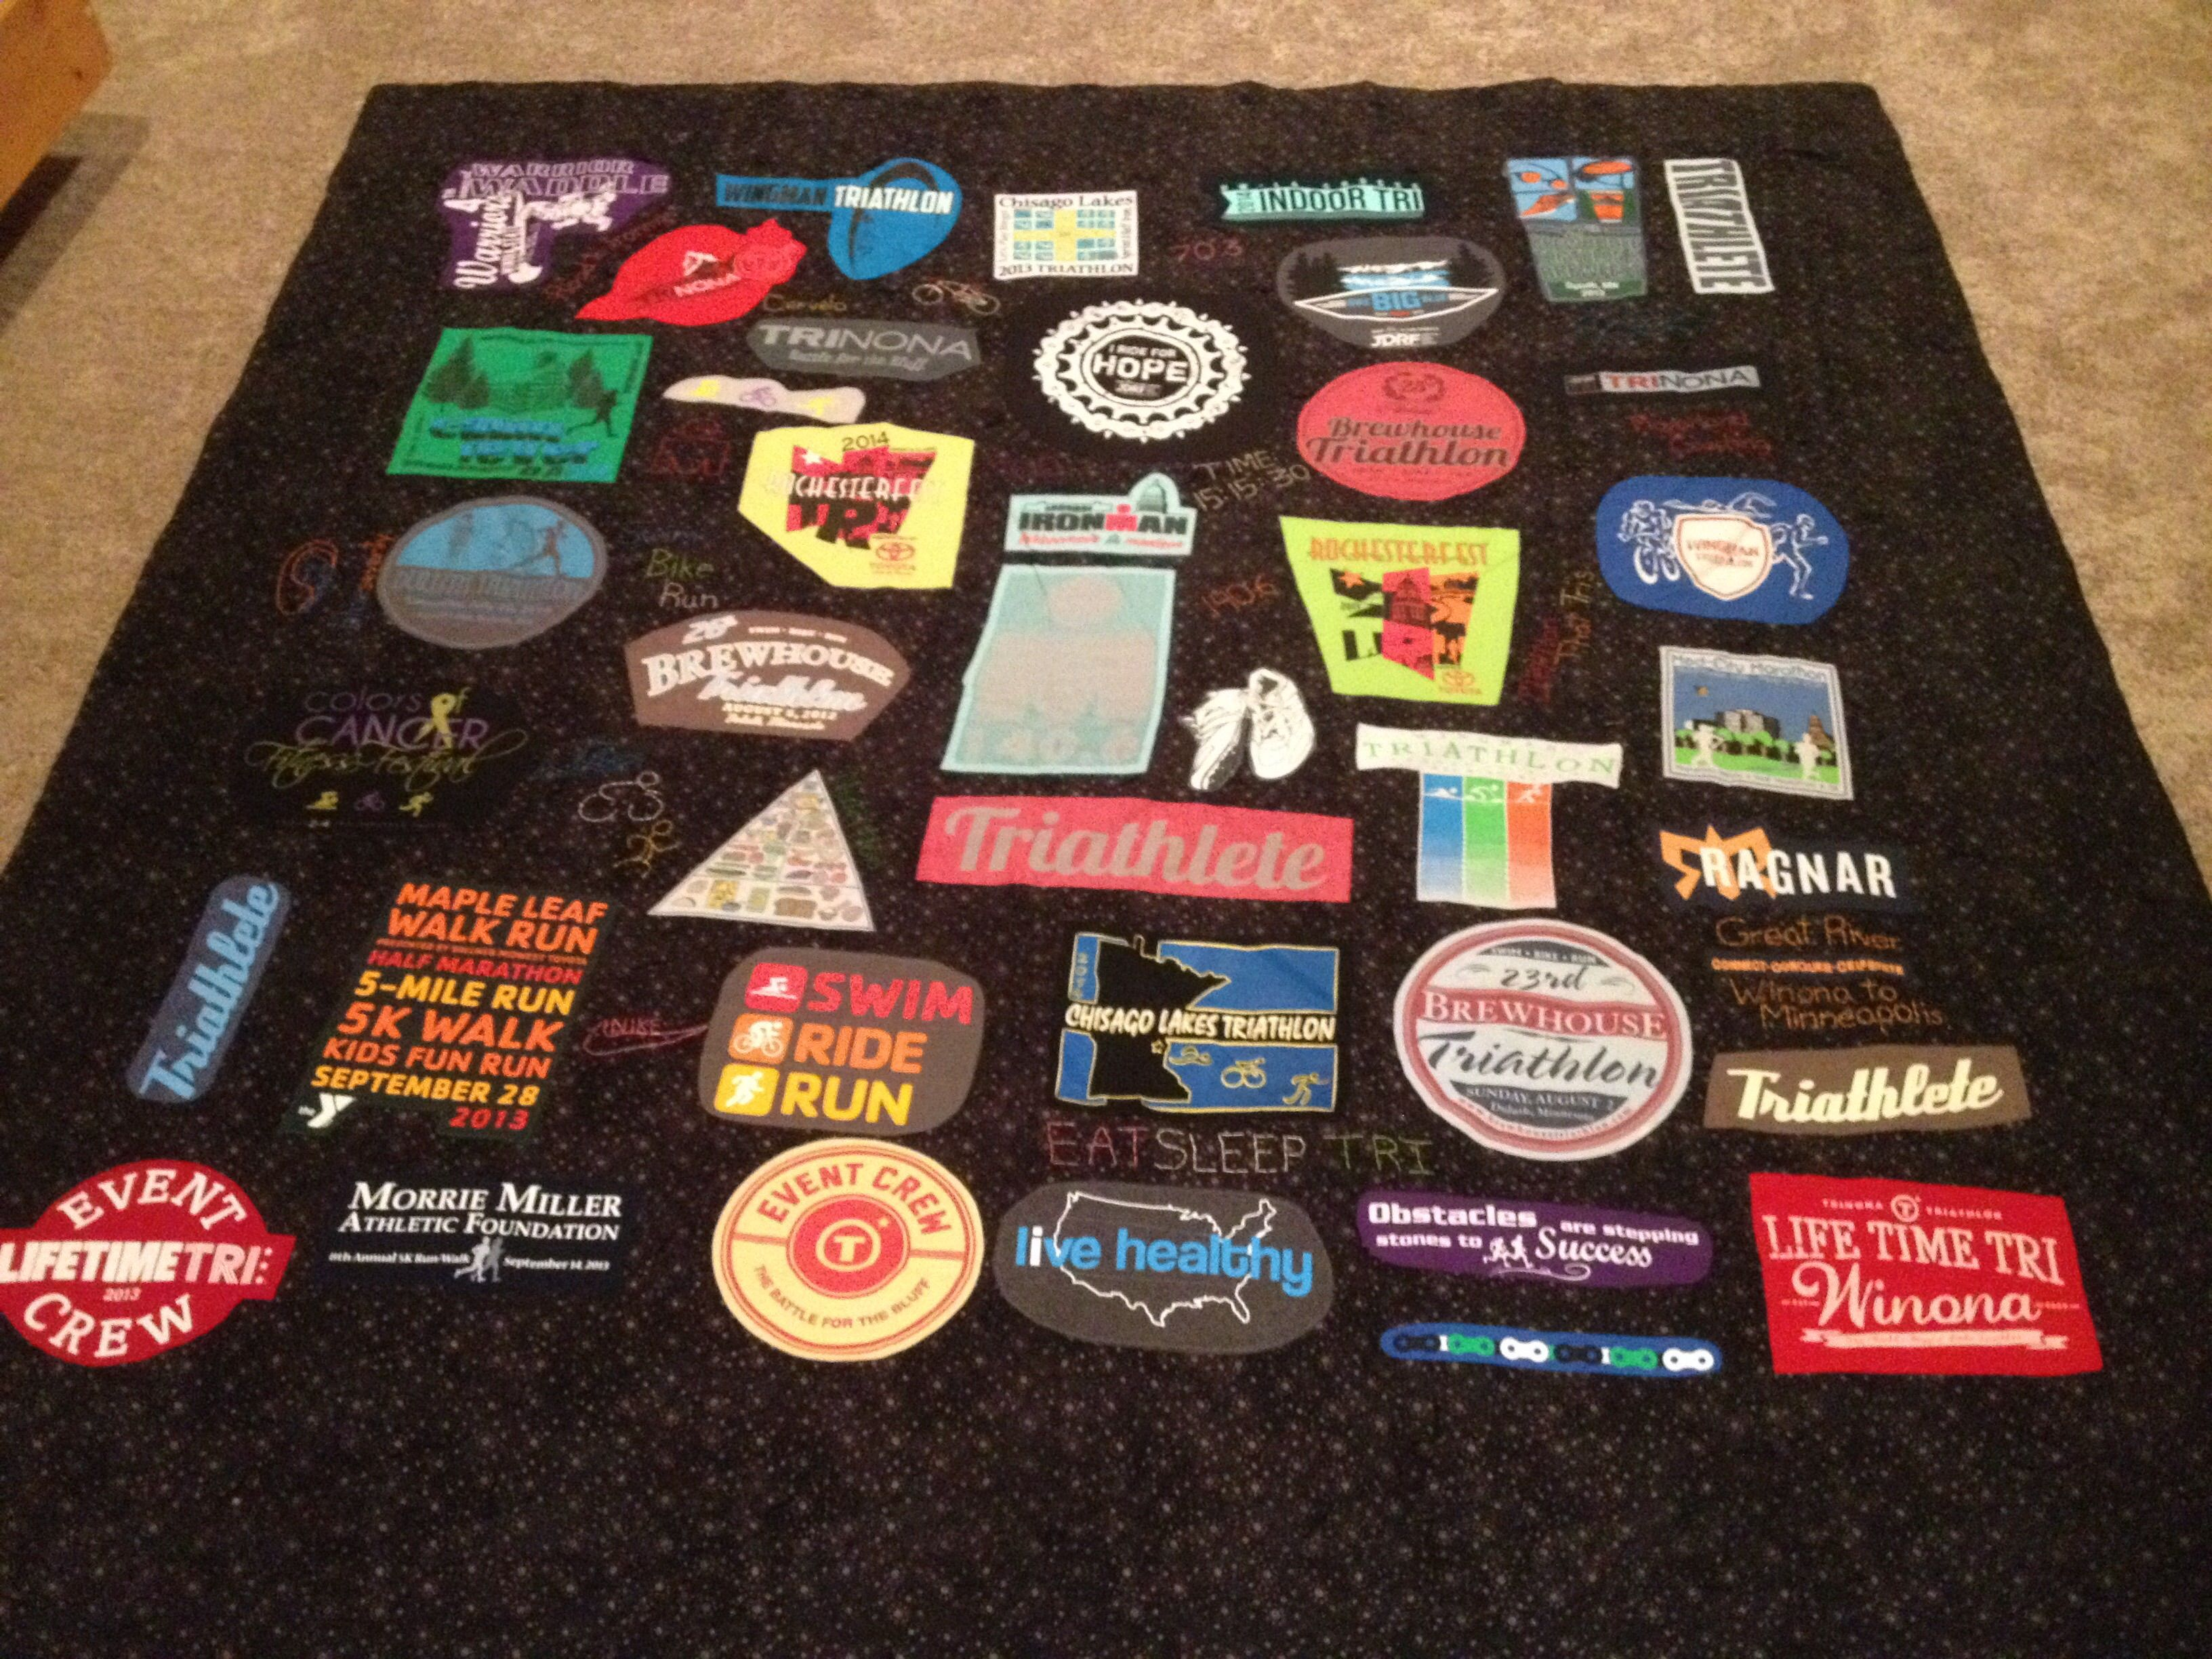 DIY T-Shirt Quilt - Step-by-Step Instructions | Triathlon ... : making a t shirt quilt - Adamdwight.com